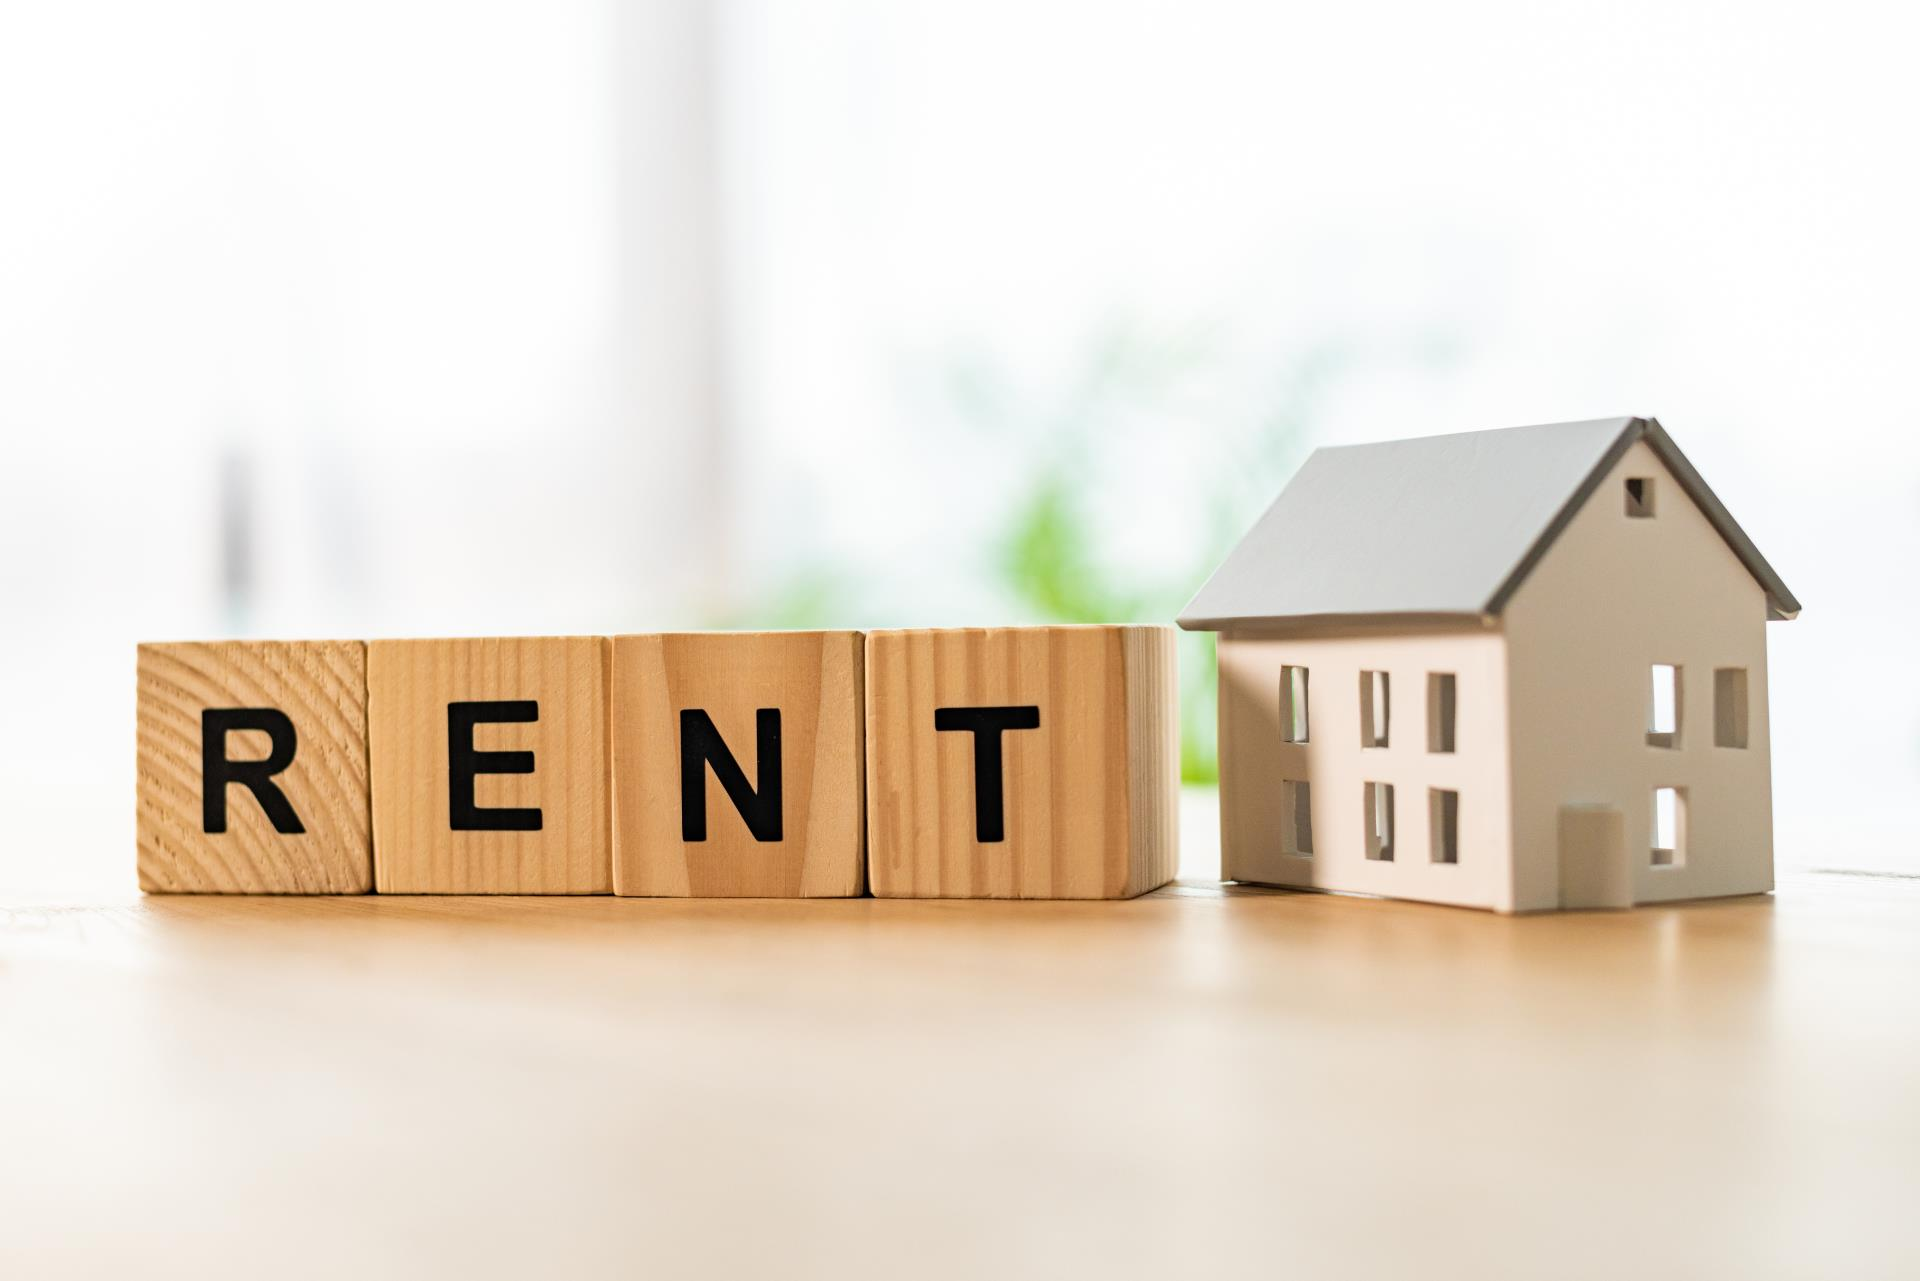 Rent spelled in Bblock letters